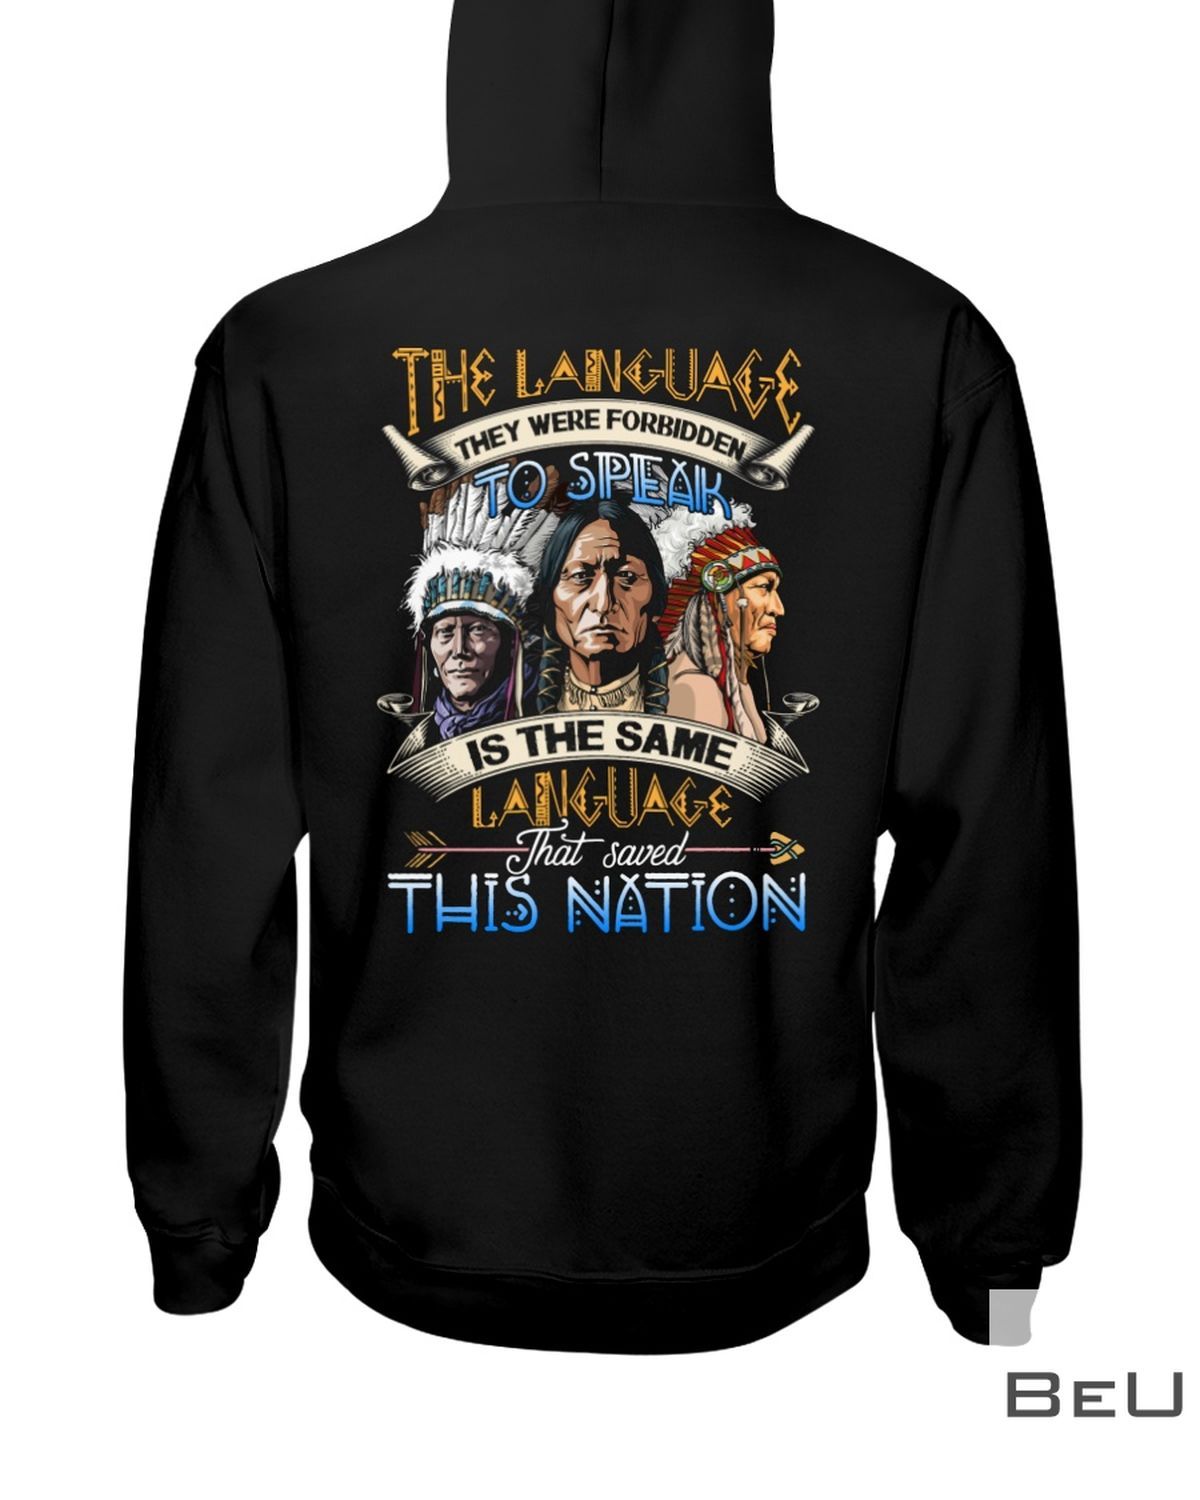 The Language They Were Forbidden To Speak Is The Same Language That Saved This Nation Shirt z